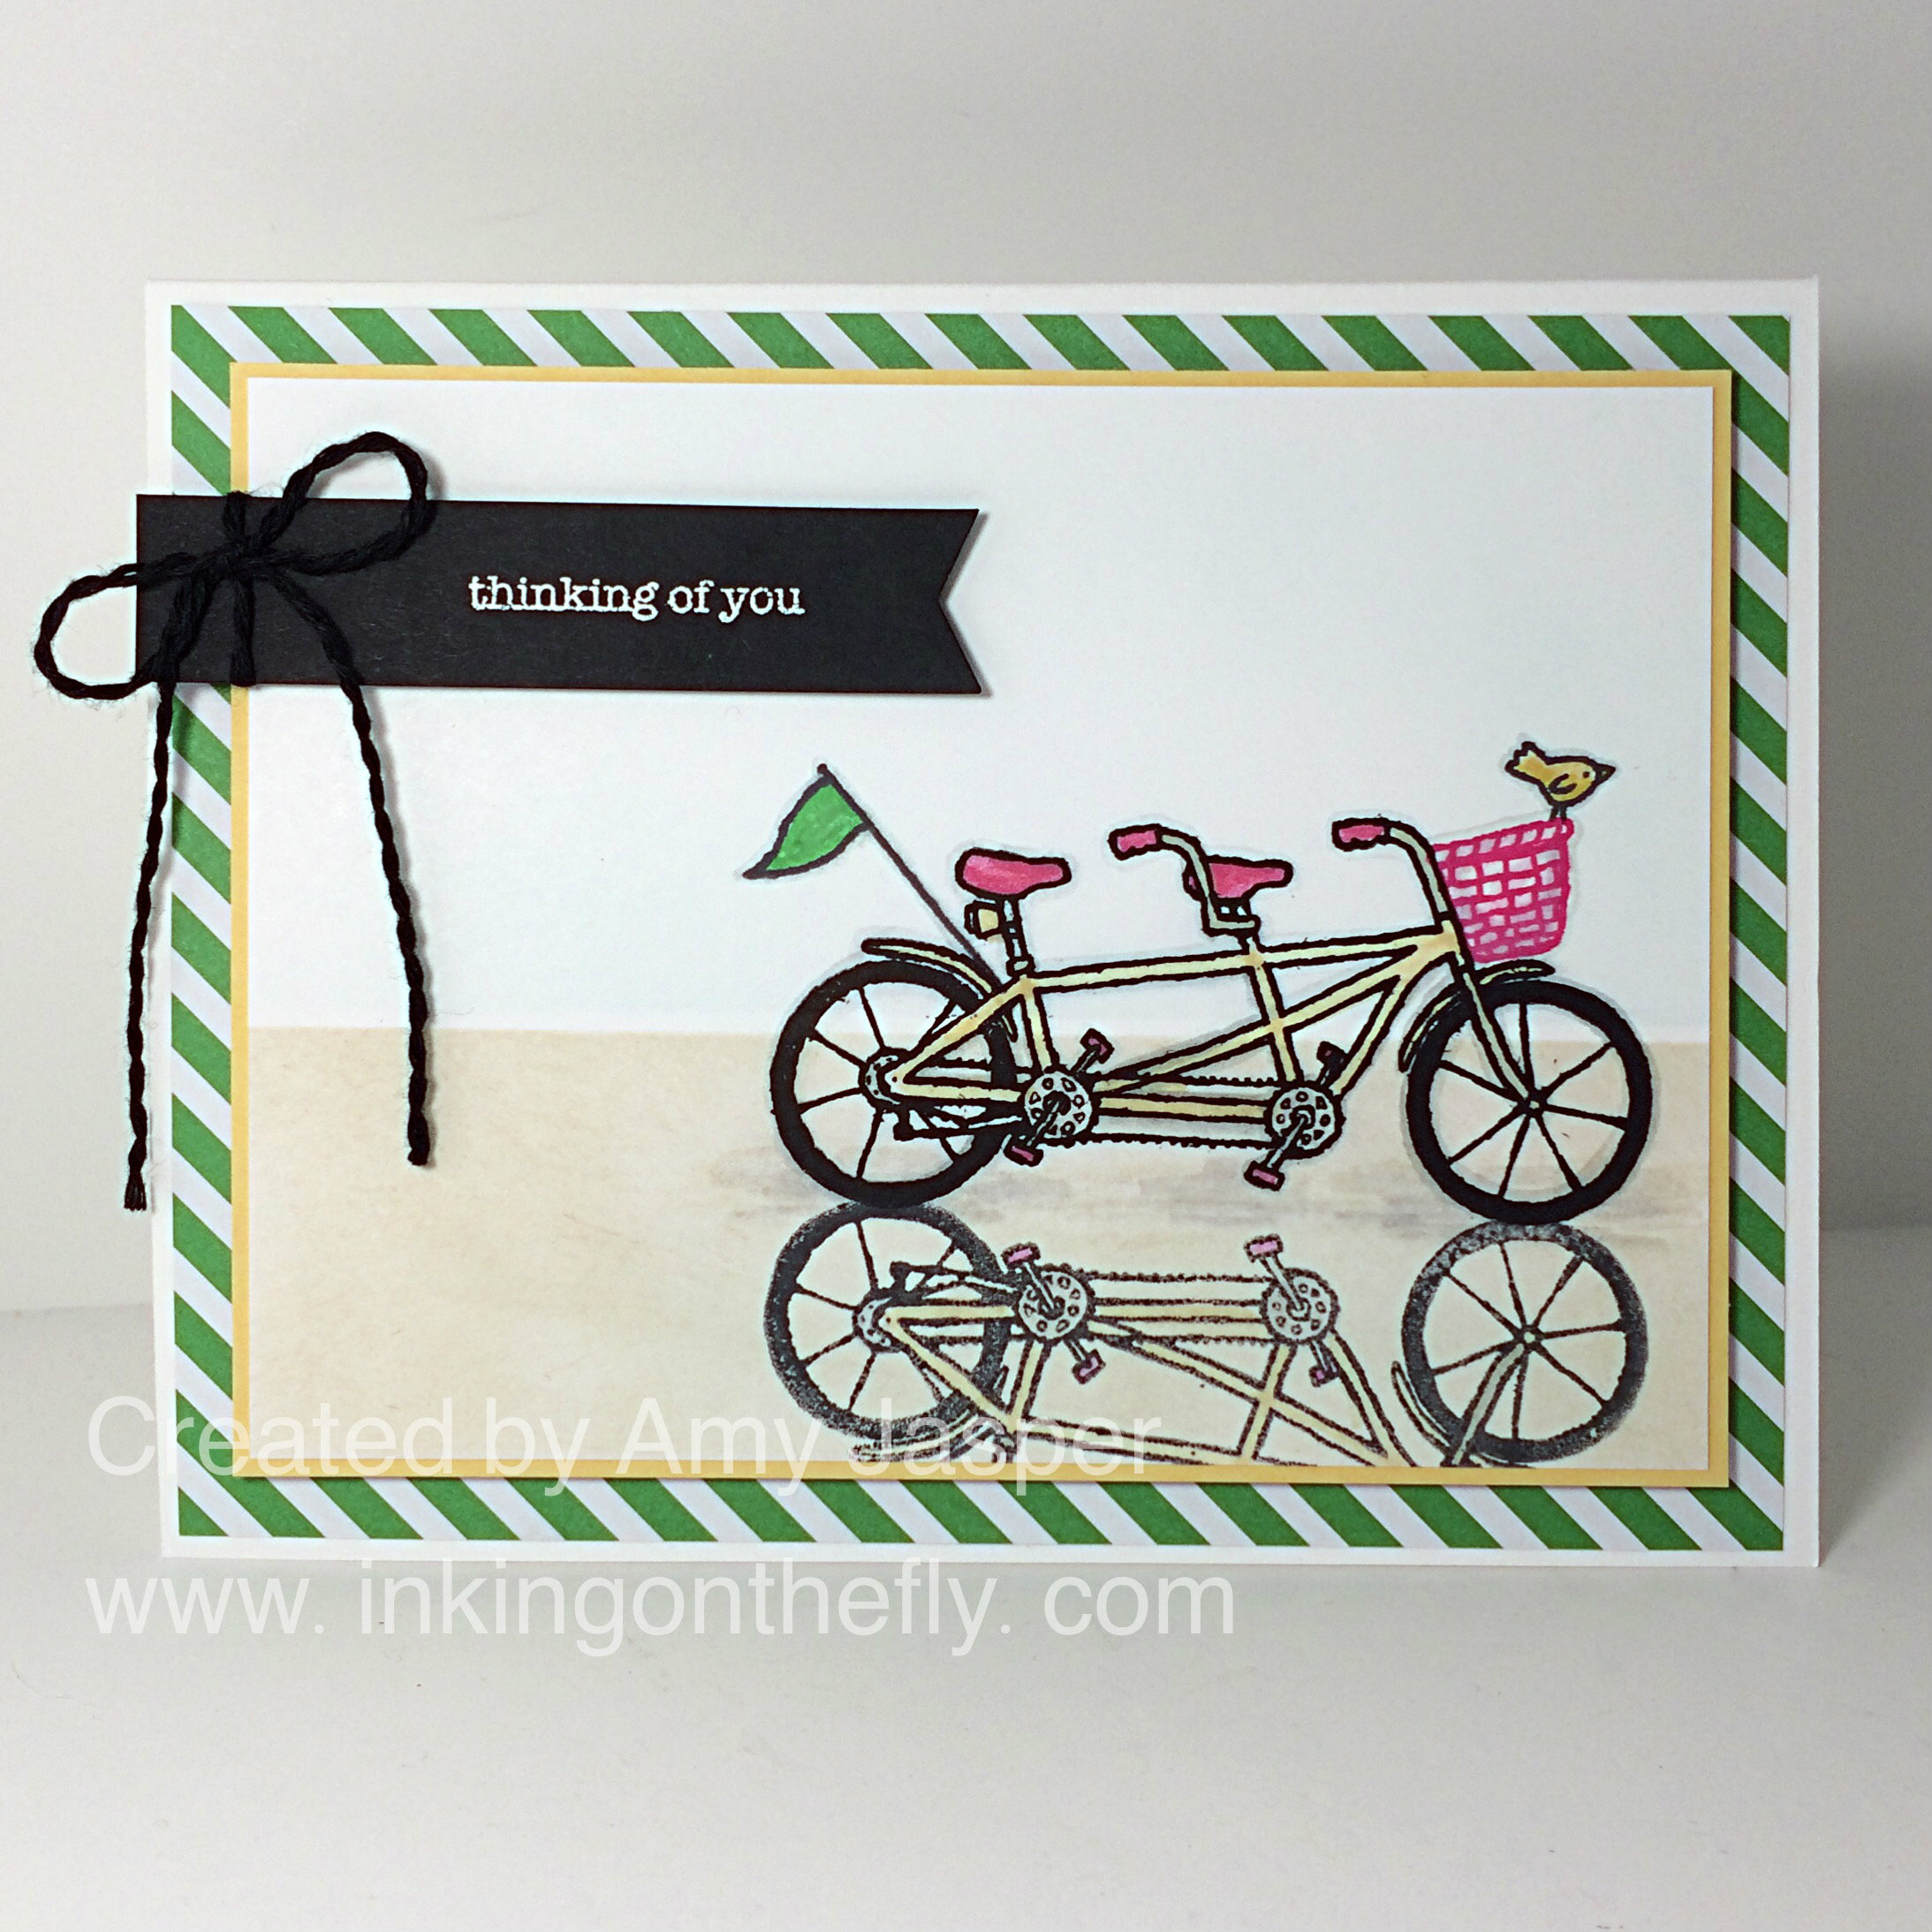 Pedal Pusher Reflection card by Amy Jasper www.inkingonthefly.com